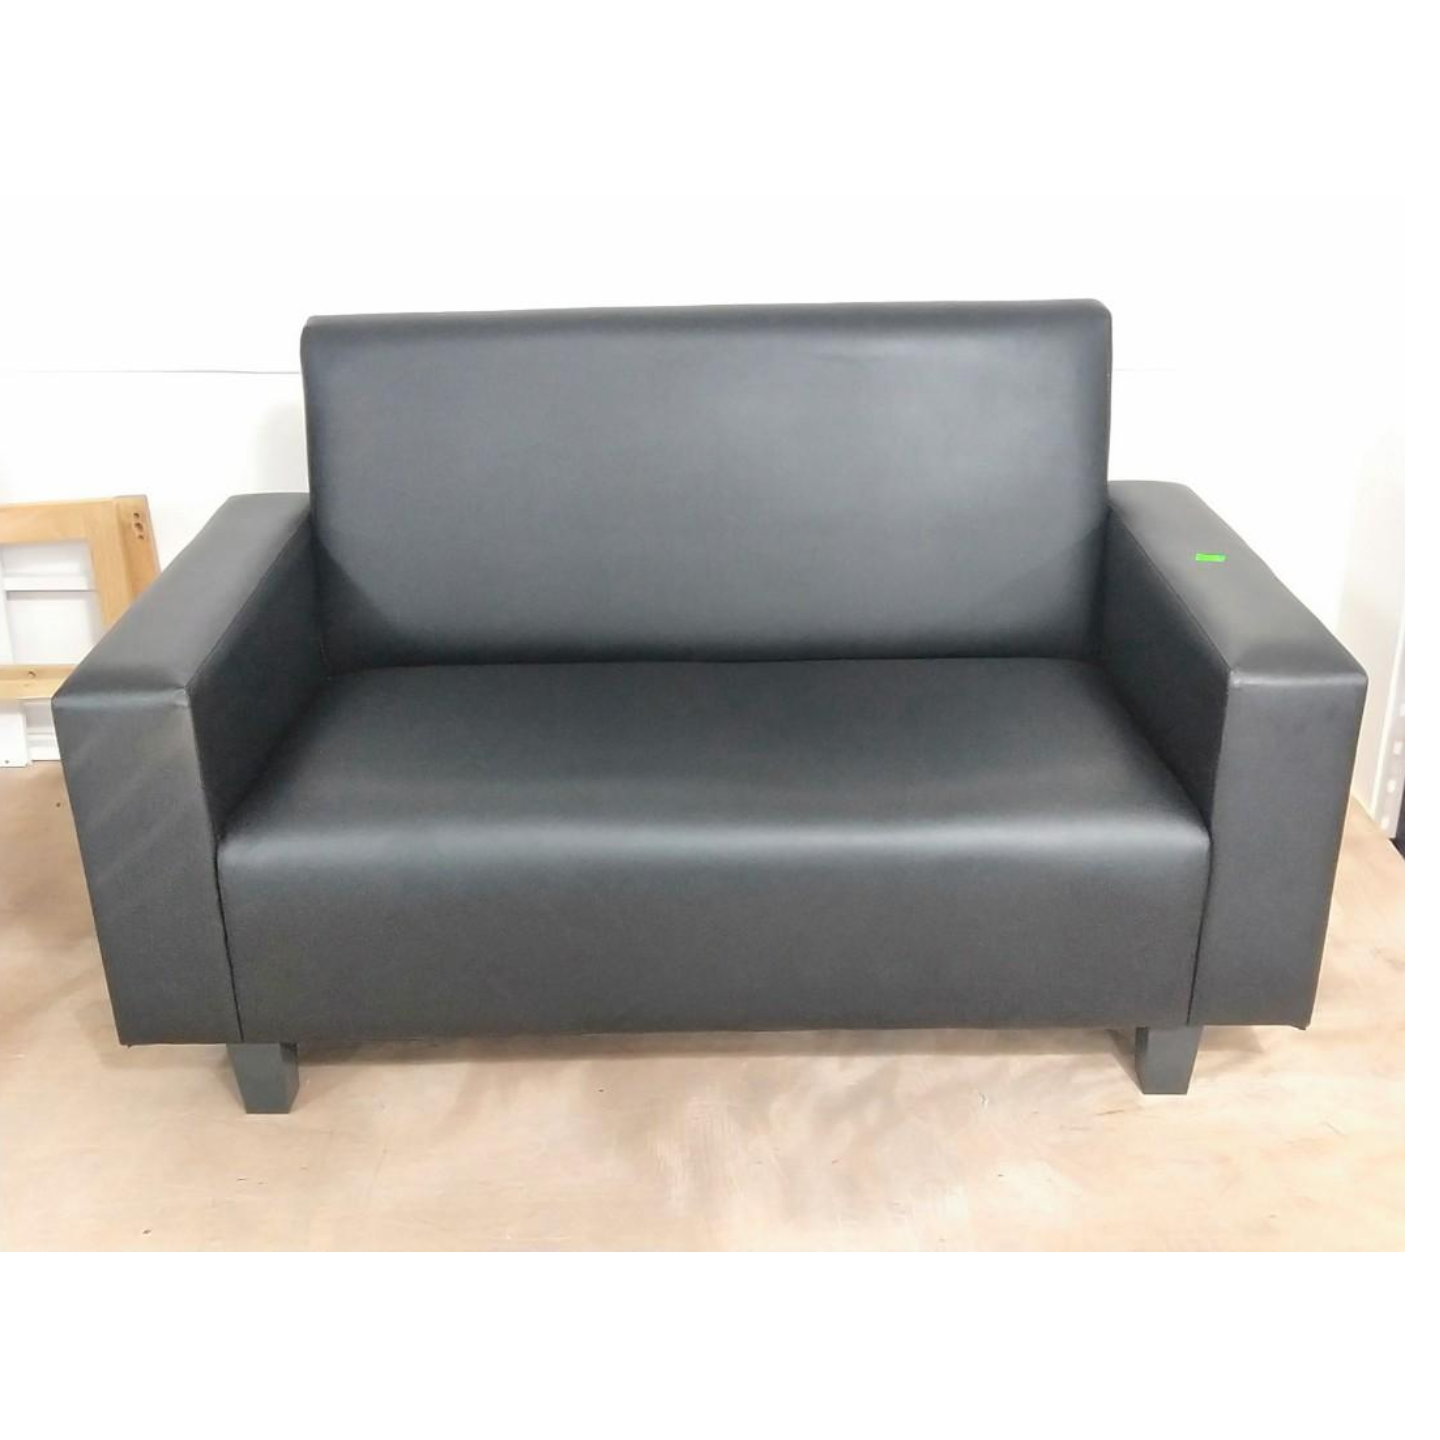 JENIN Black PU 2 Seater Sofa